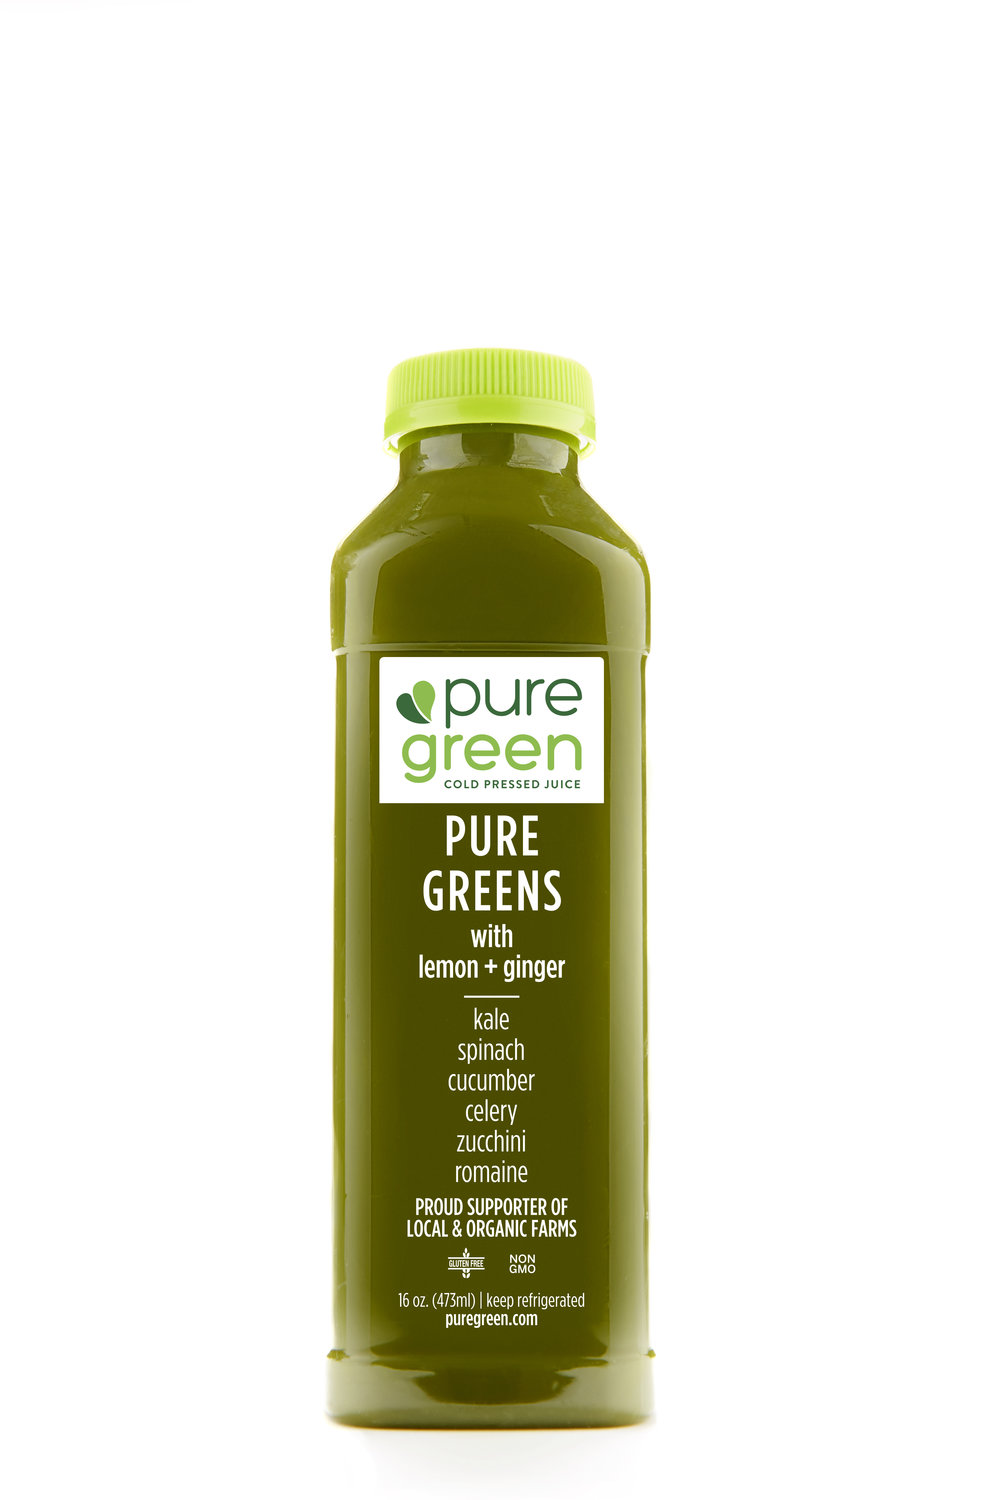 Pure+Greens+Lemon+Ginger+Cold+Pressed+Juice.jpg